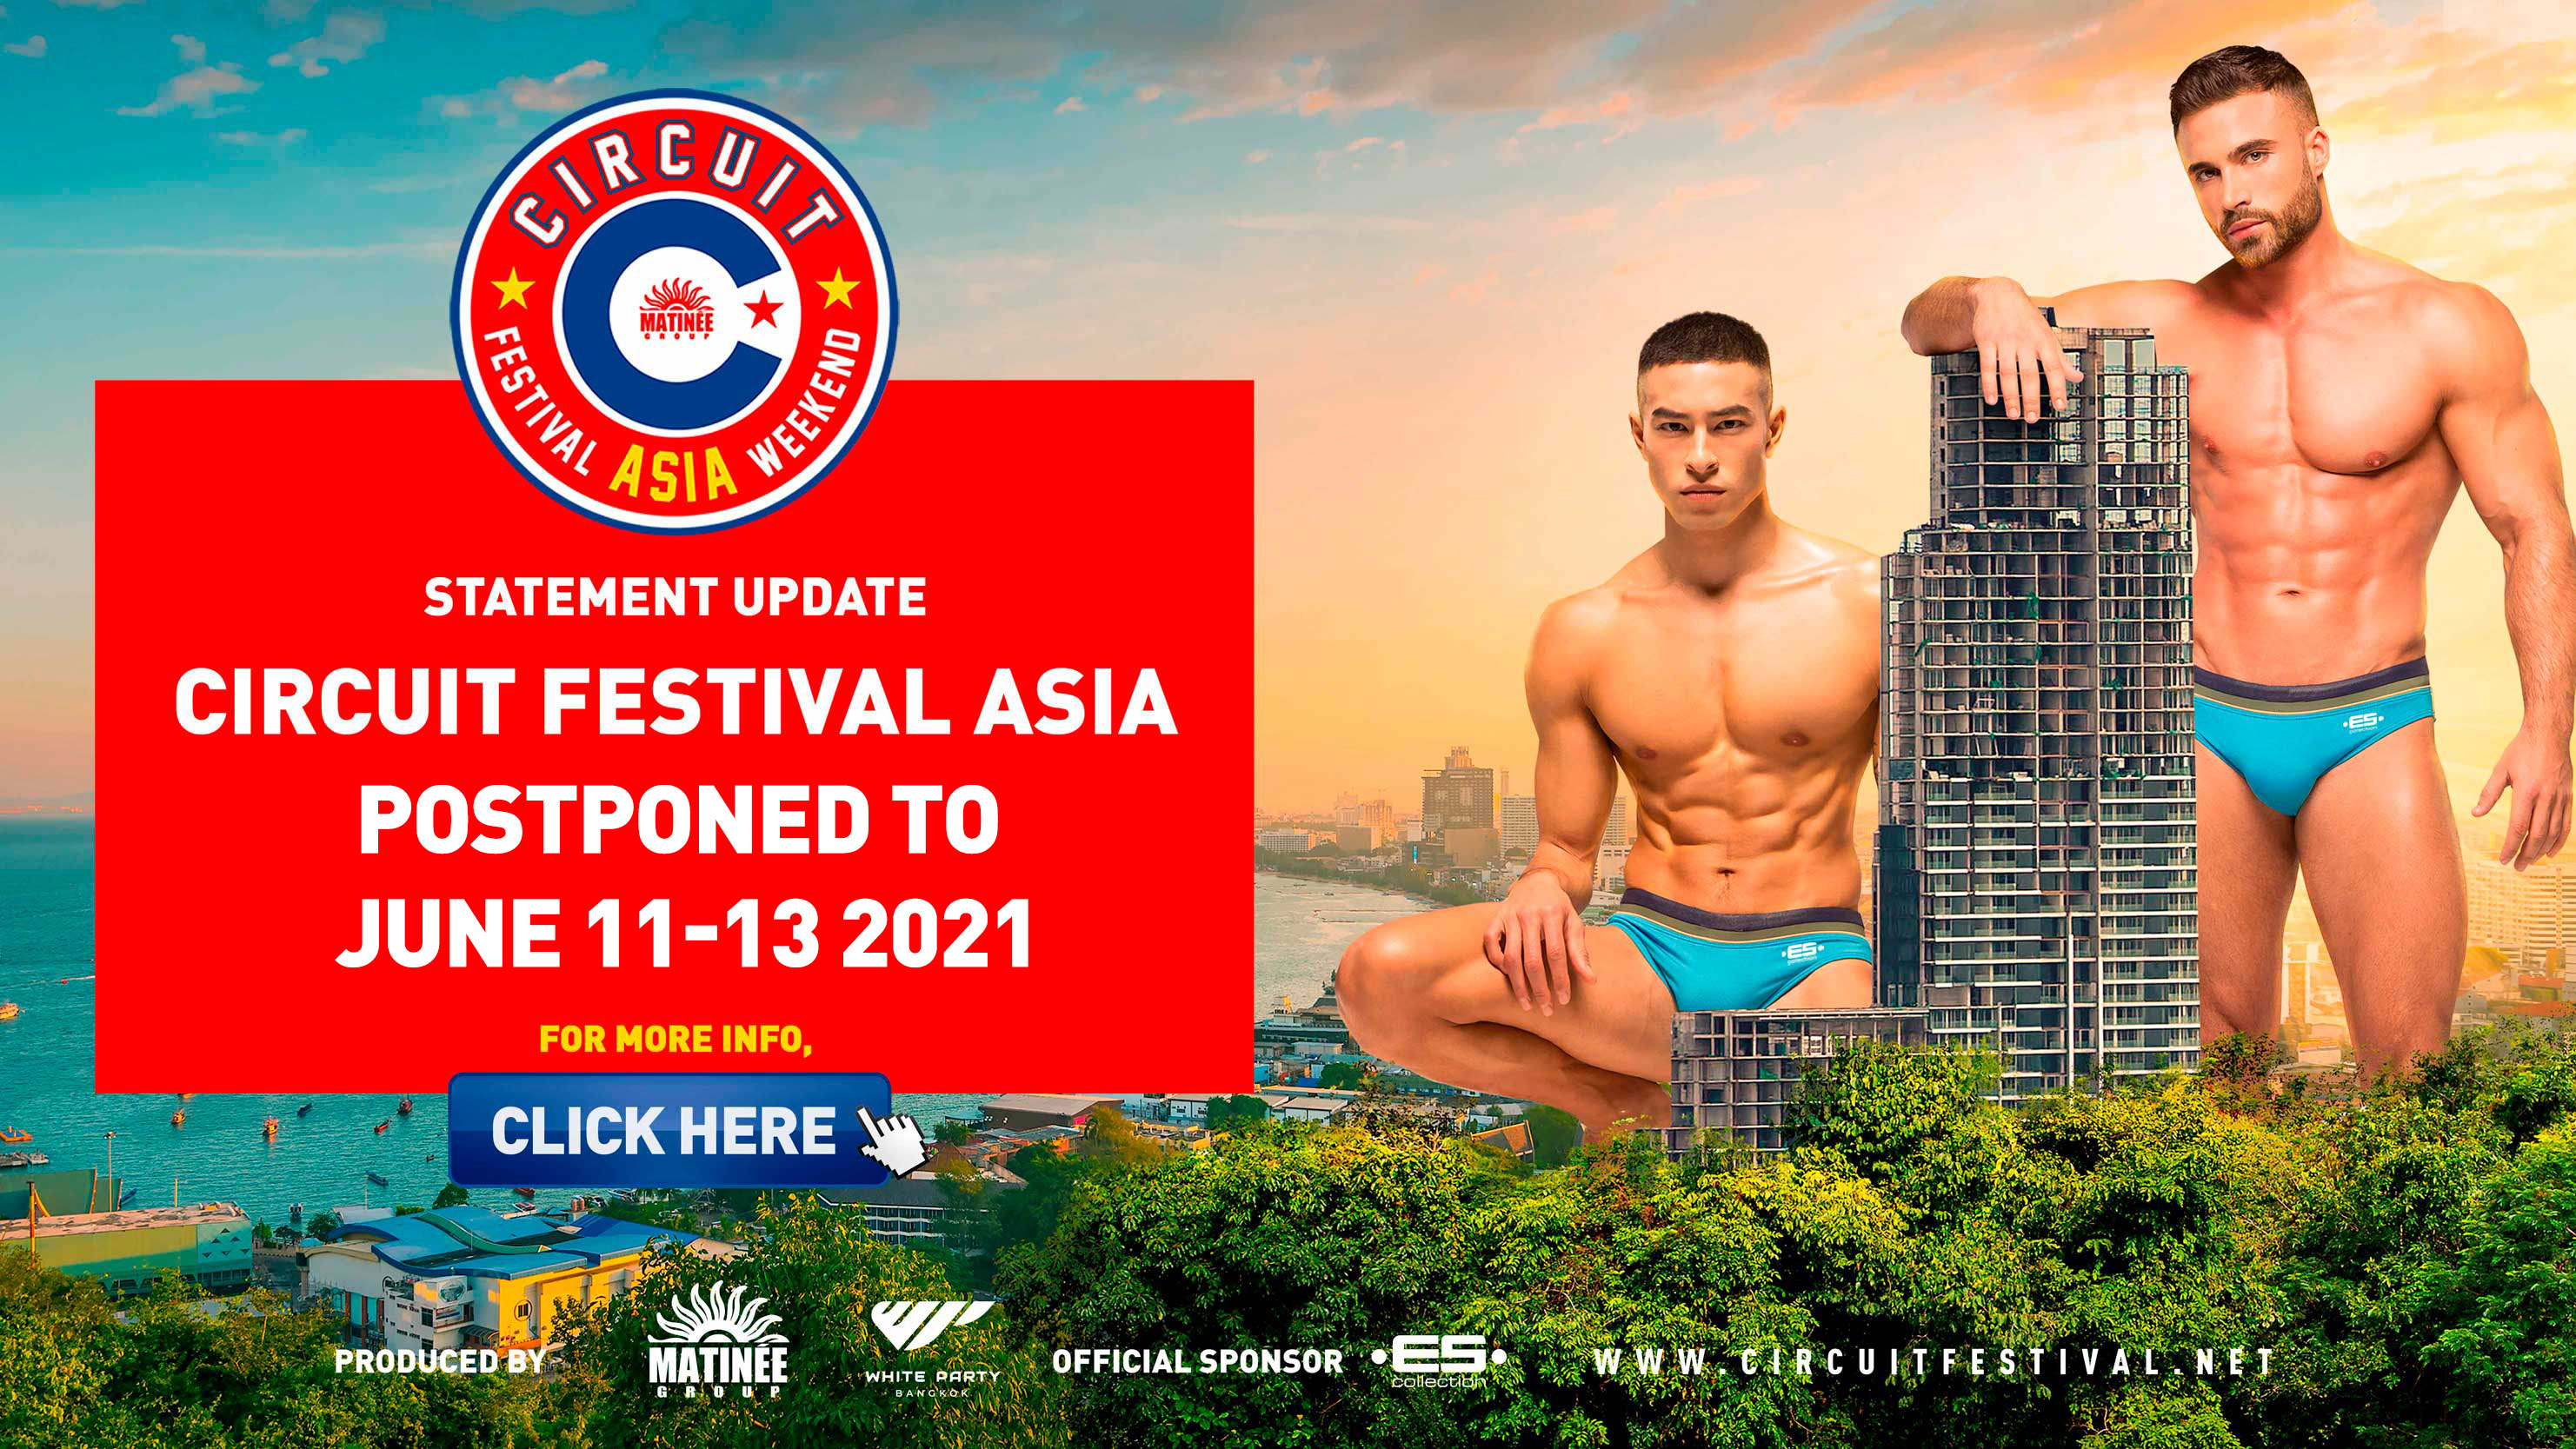 circuitfestival_asia_web_gayfestival_gayparty_asia_circuit_festival_event_gay_party_2